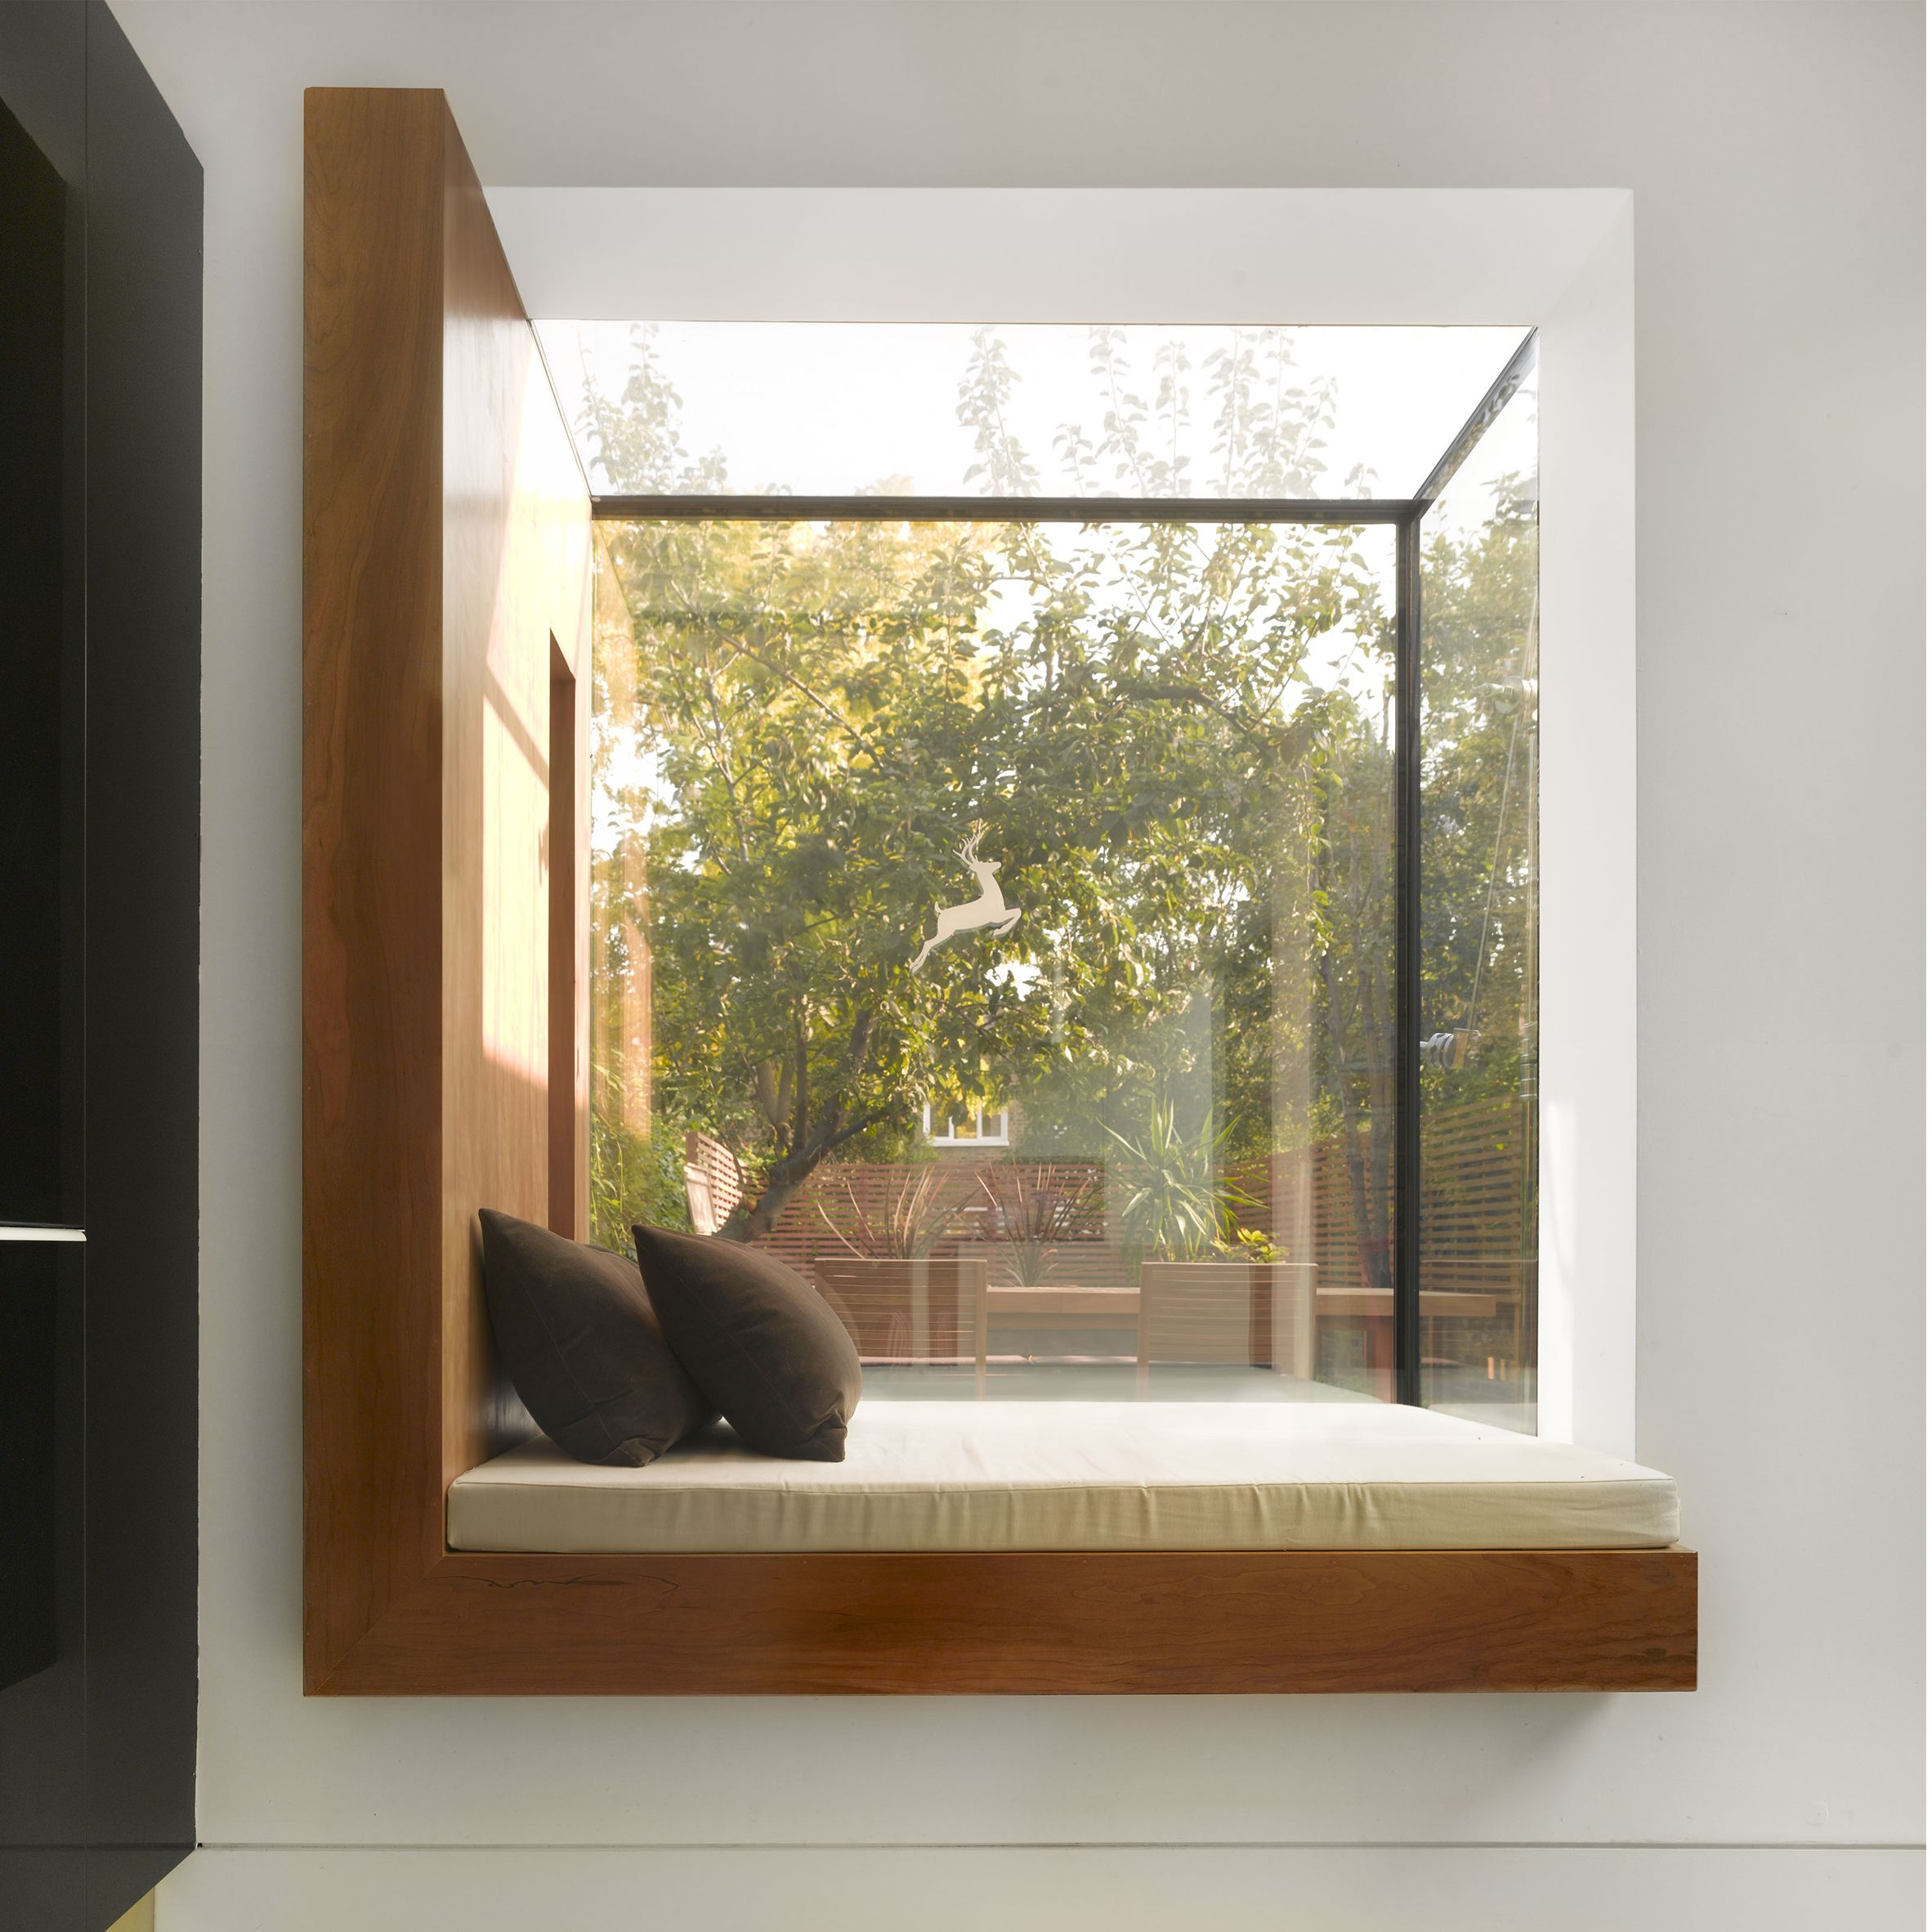 House wooden window design  pin by jessica minear on home  pinterest  house house design and